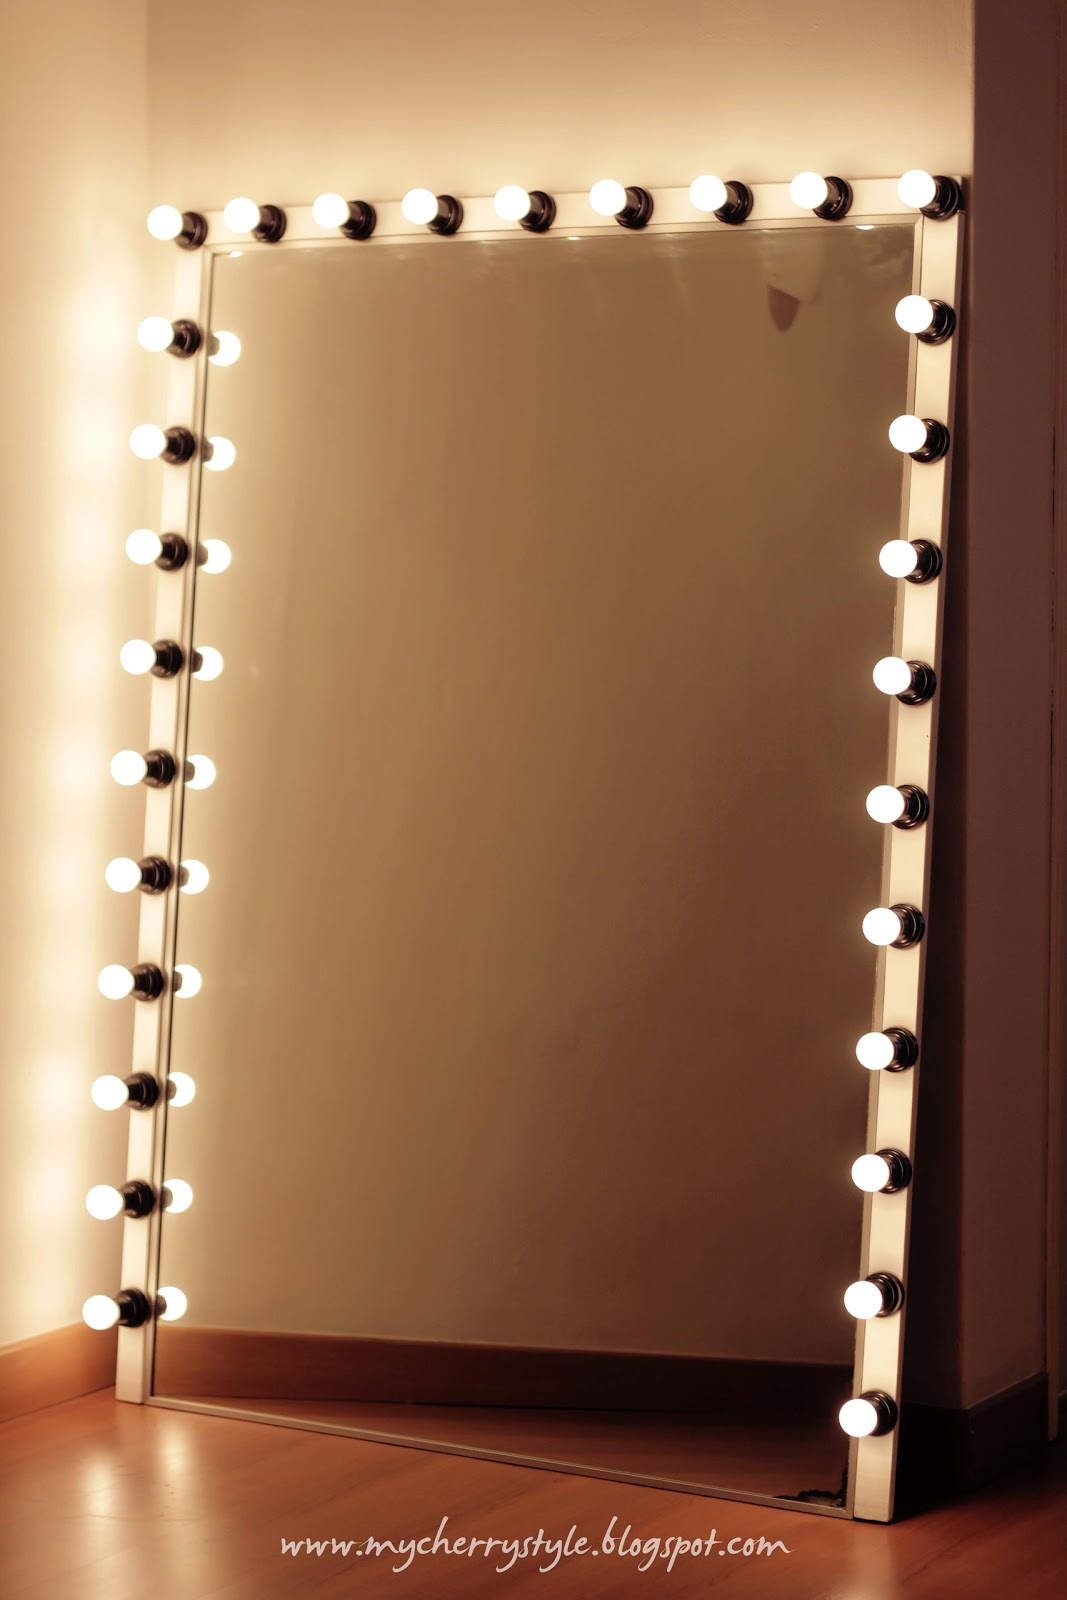 diy hollywood style mirror with lights tutorial from scratch for real. Black Bedroom Furniture Sets. Home Design Ideas